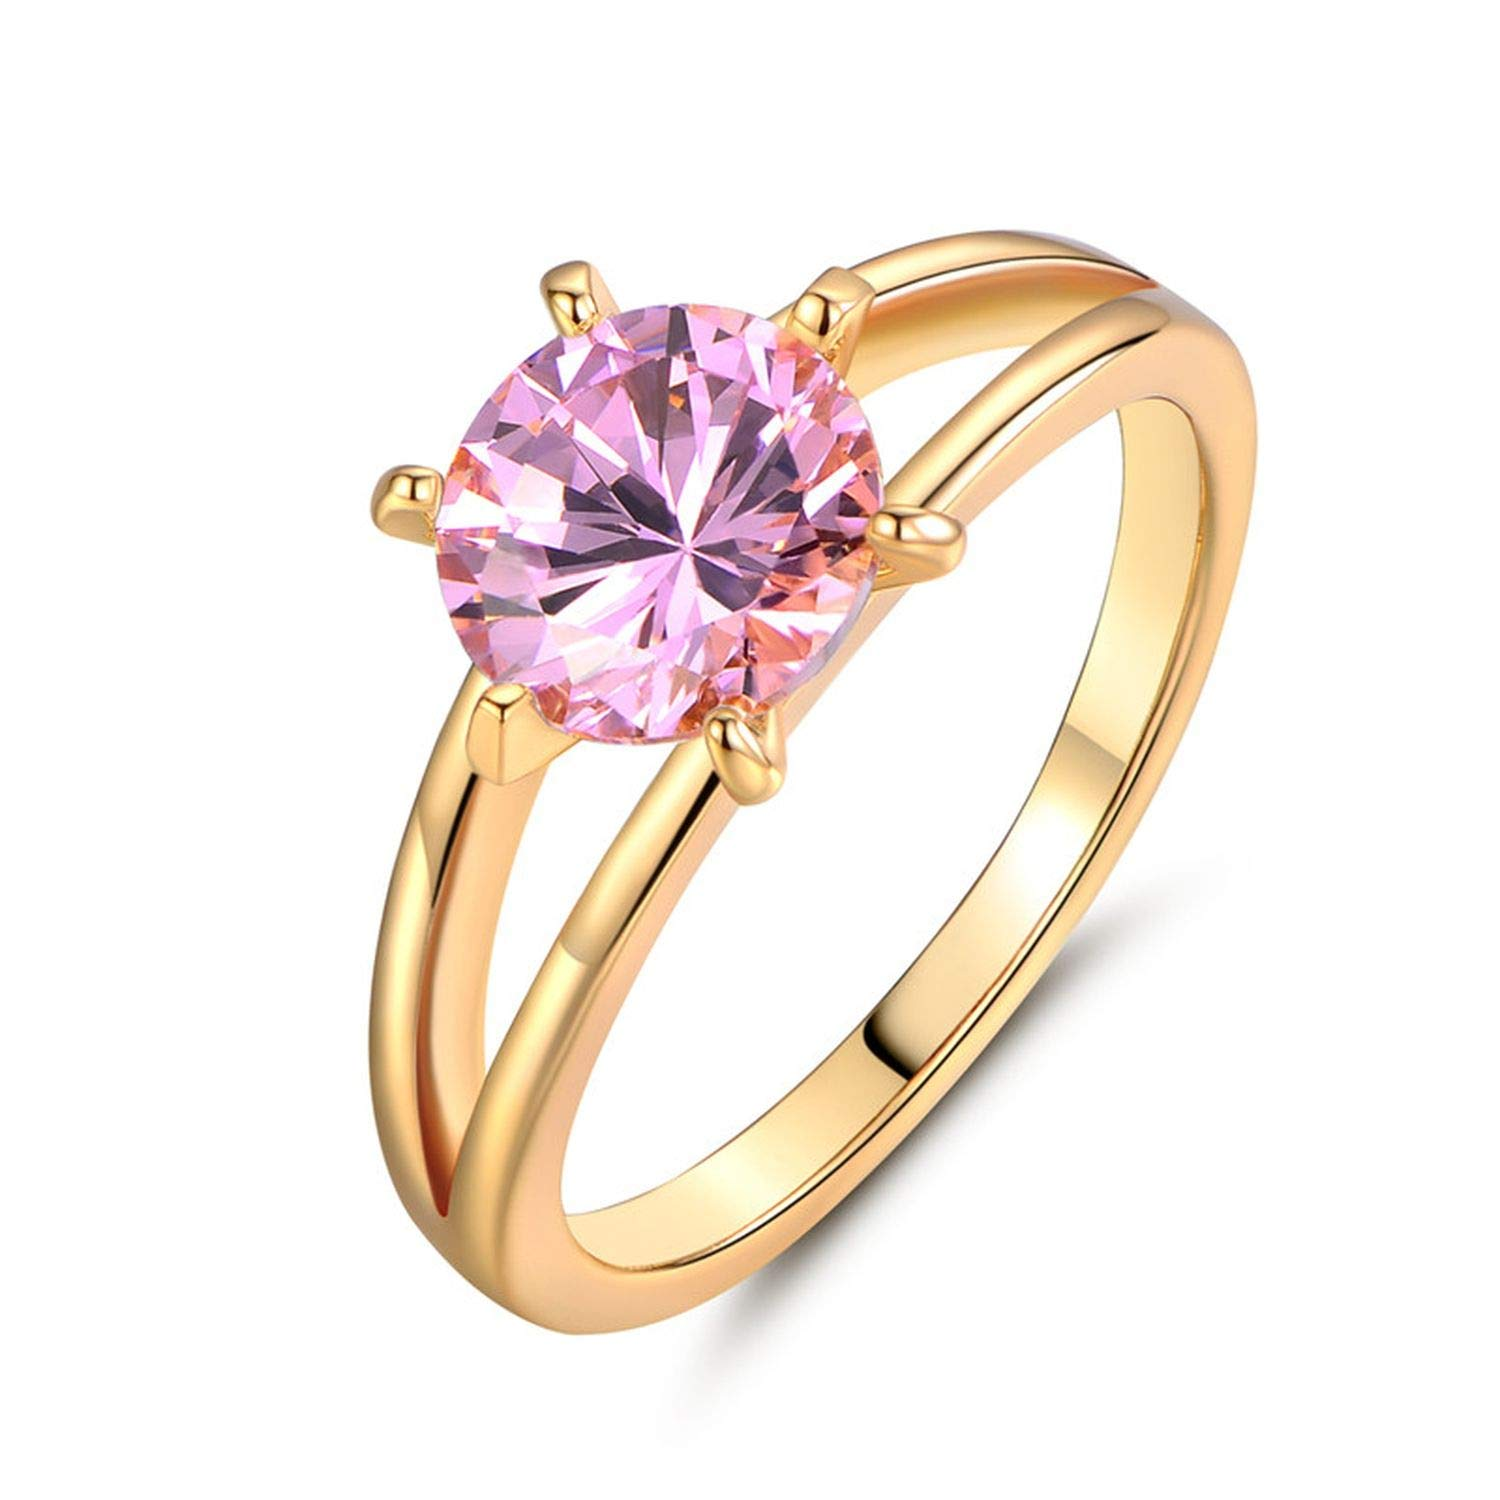 tankmm Fashion Brand Wedding Ring Gold Color Finger Ring Simple Big Pink Crystal Cubic Zirconia Band Jewelry for Women